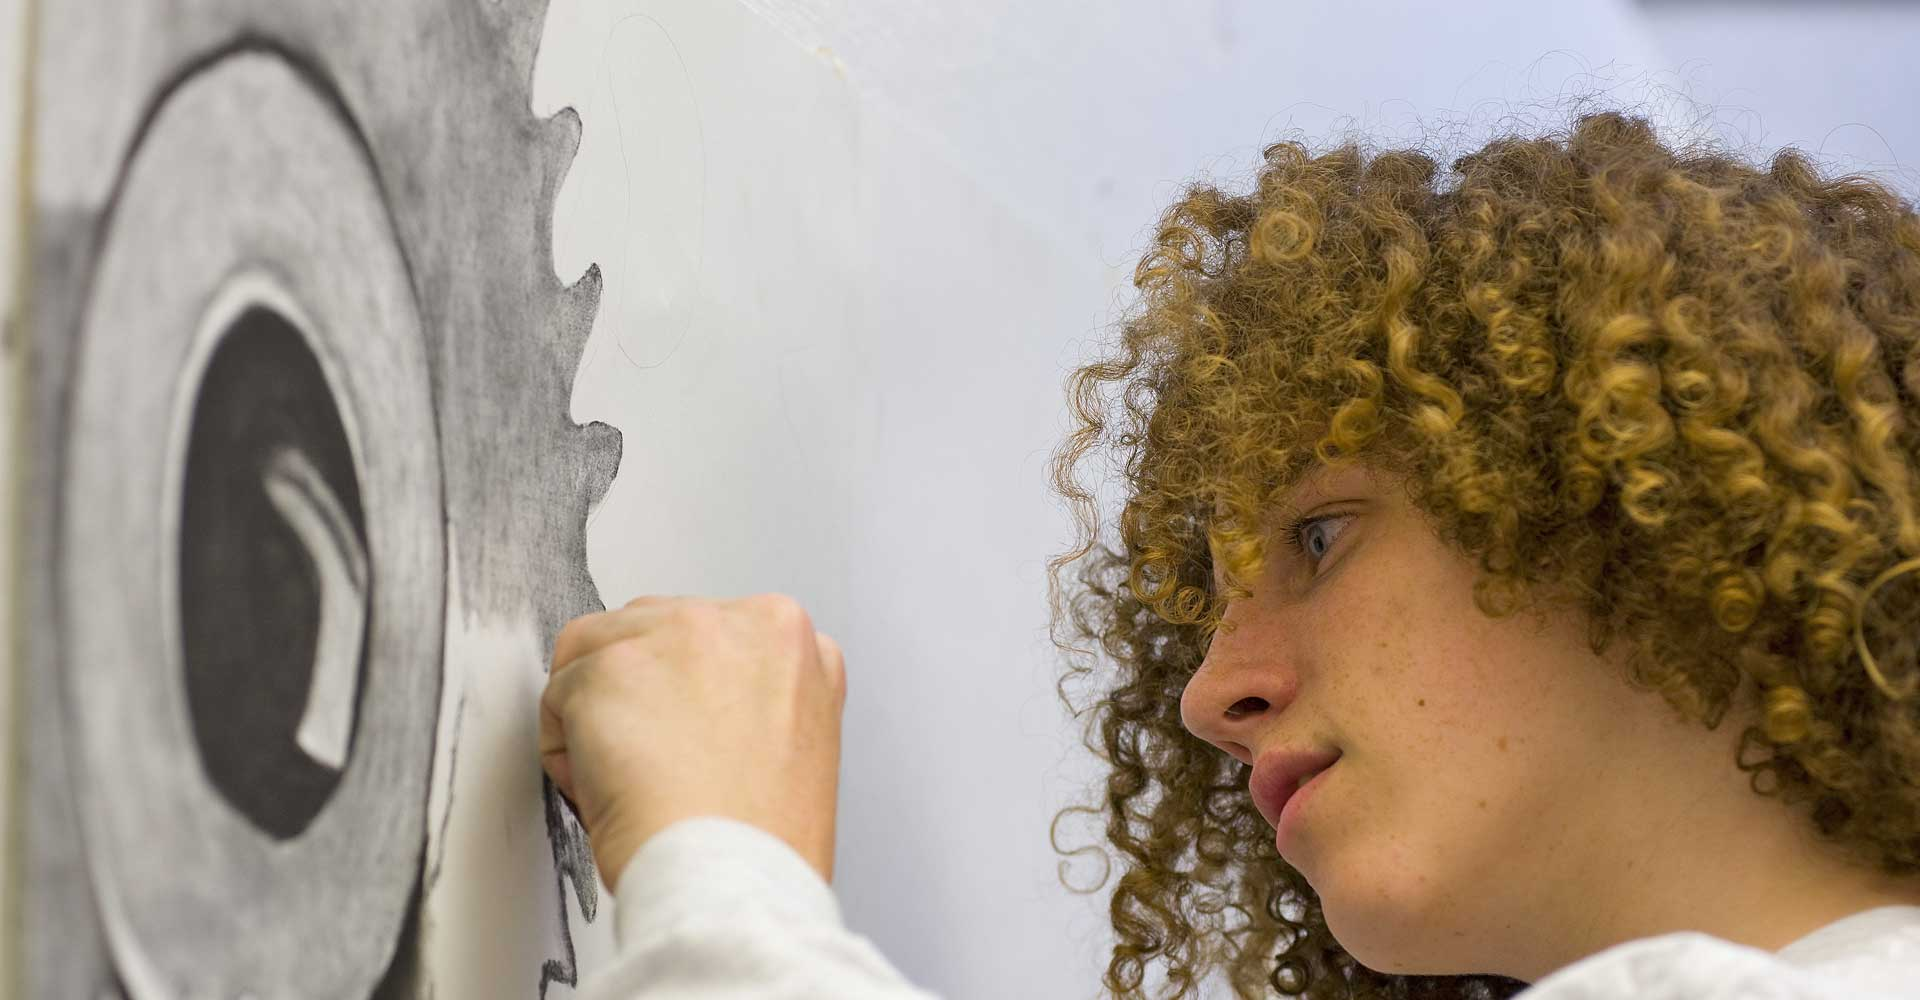 Student working on a piece of art